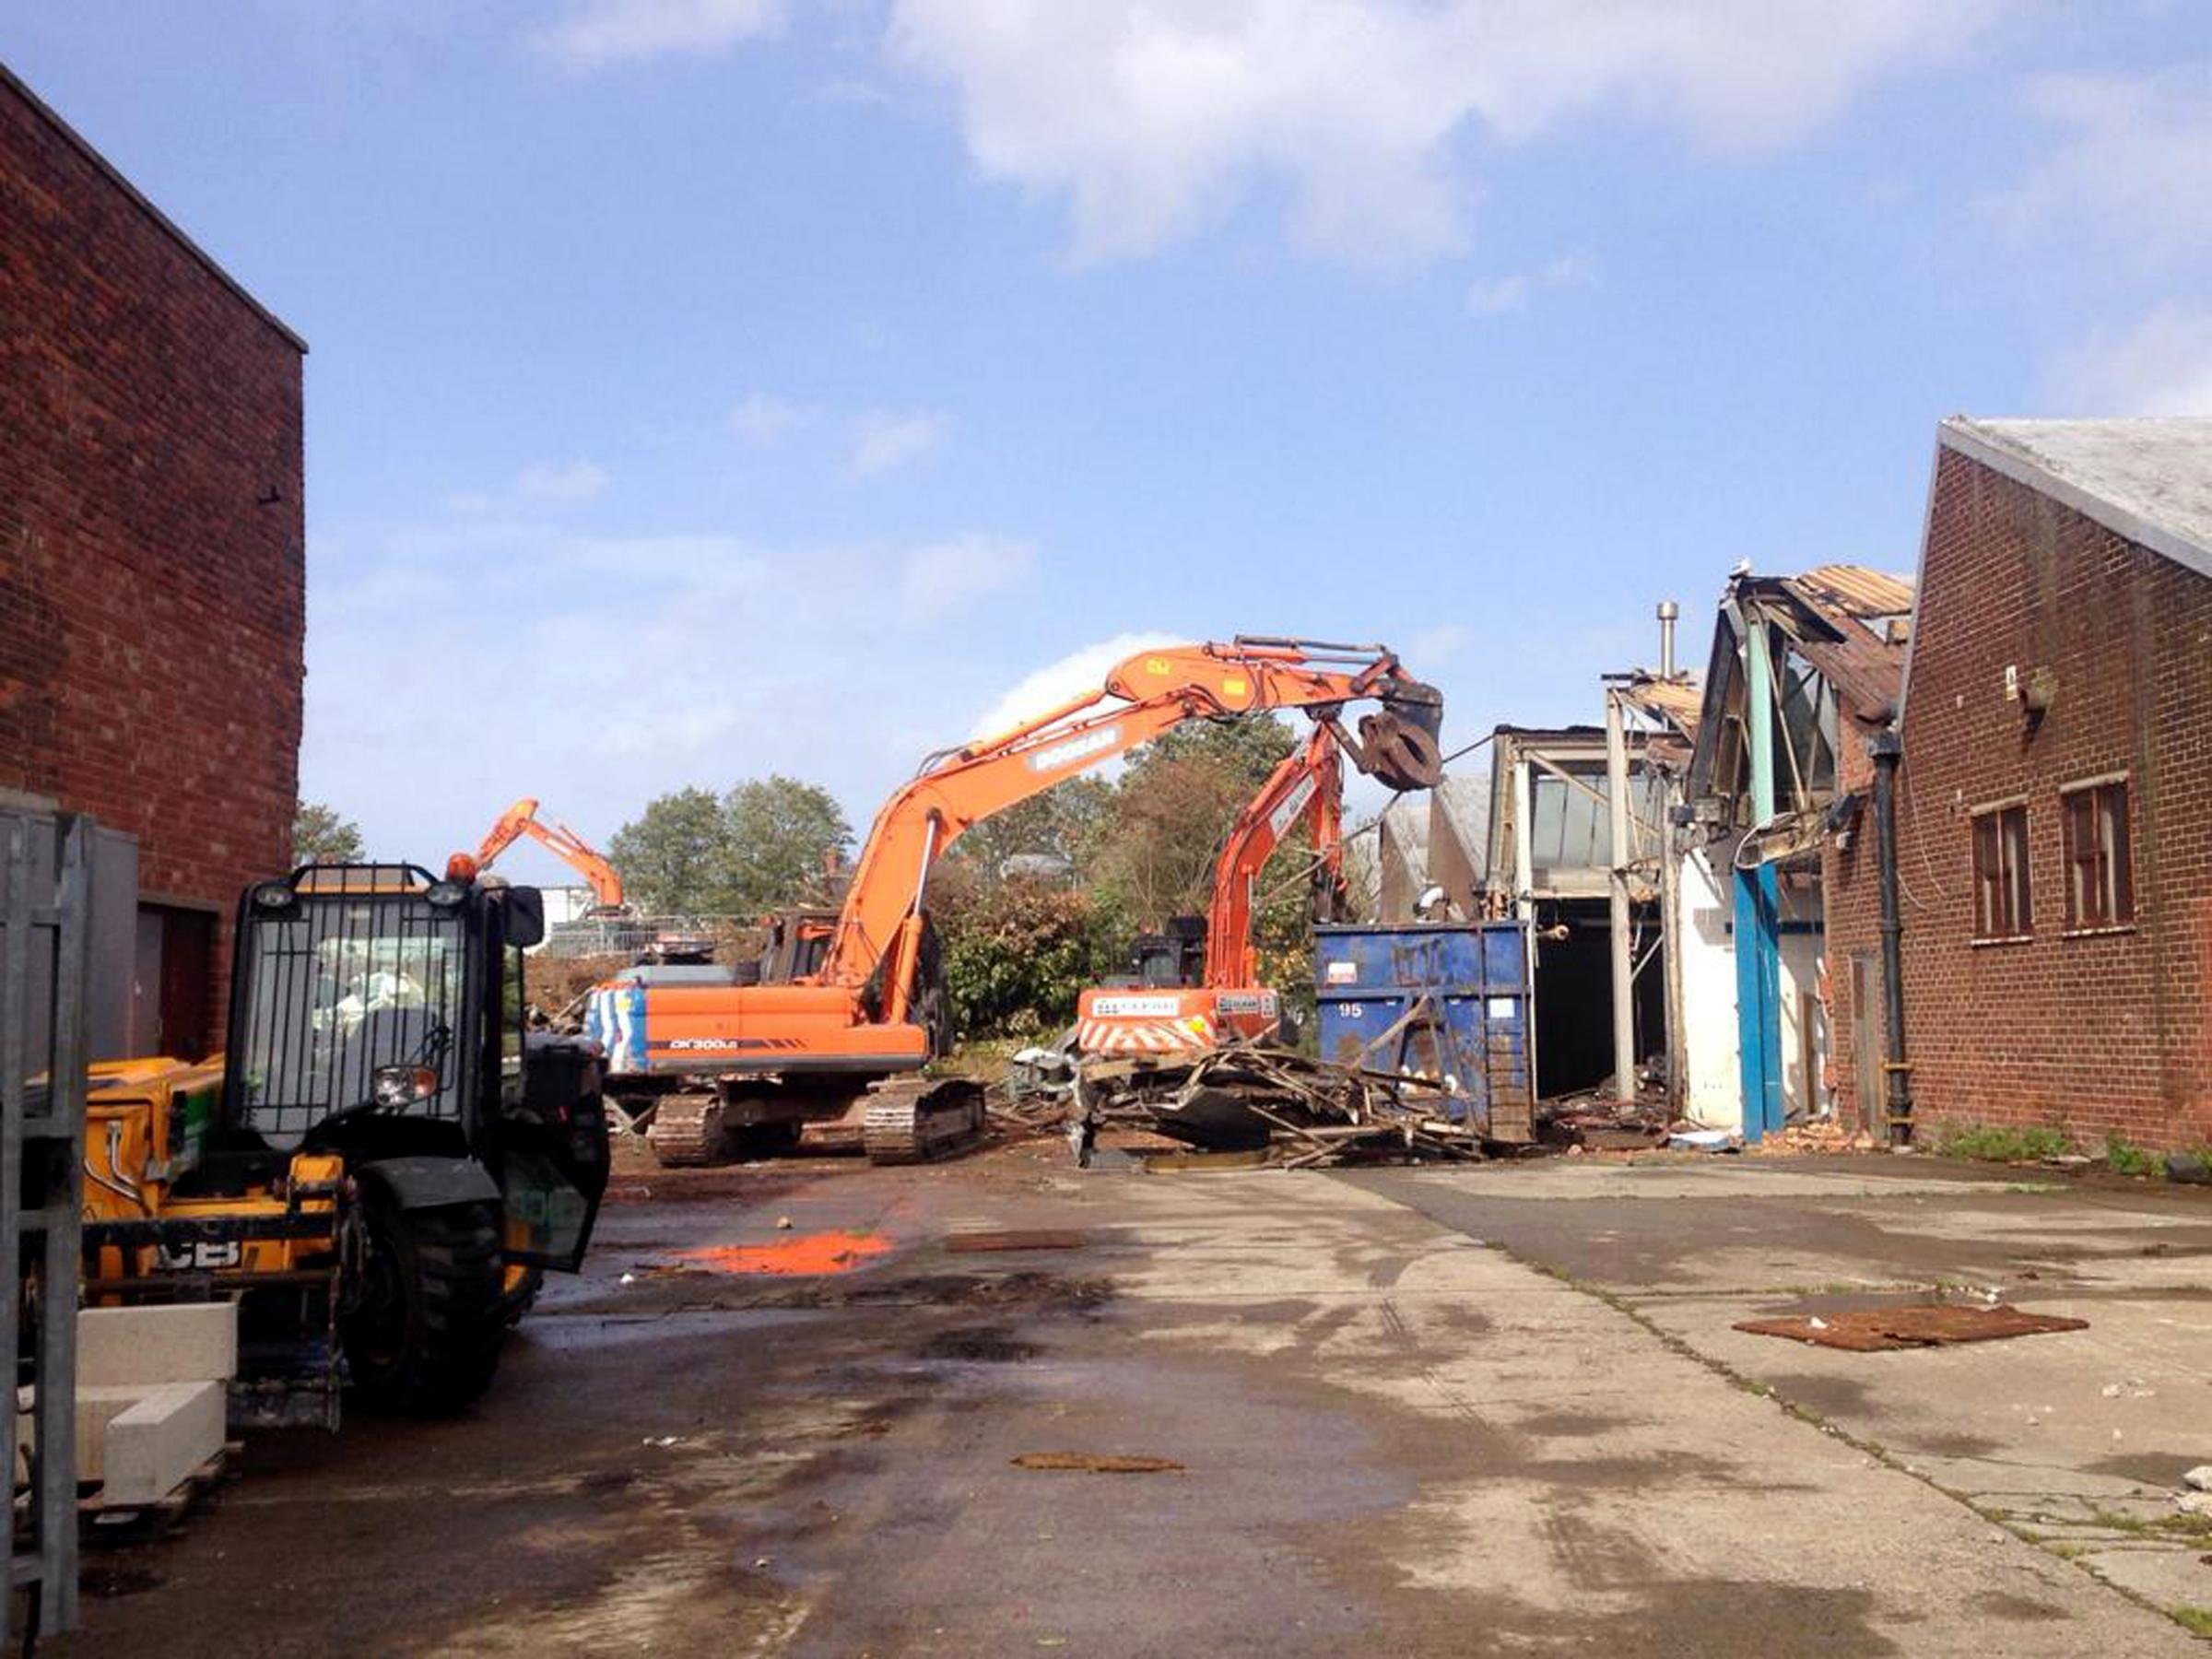 DEMOLISH: Work has started to knock down warehouses ahead of the building of a new retail park, which will include a Lidl supermarket and The Range                                                                               Picture: GAVIN ENGELBRECHT